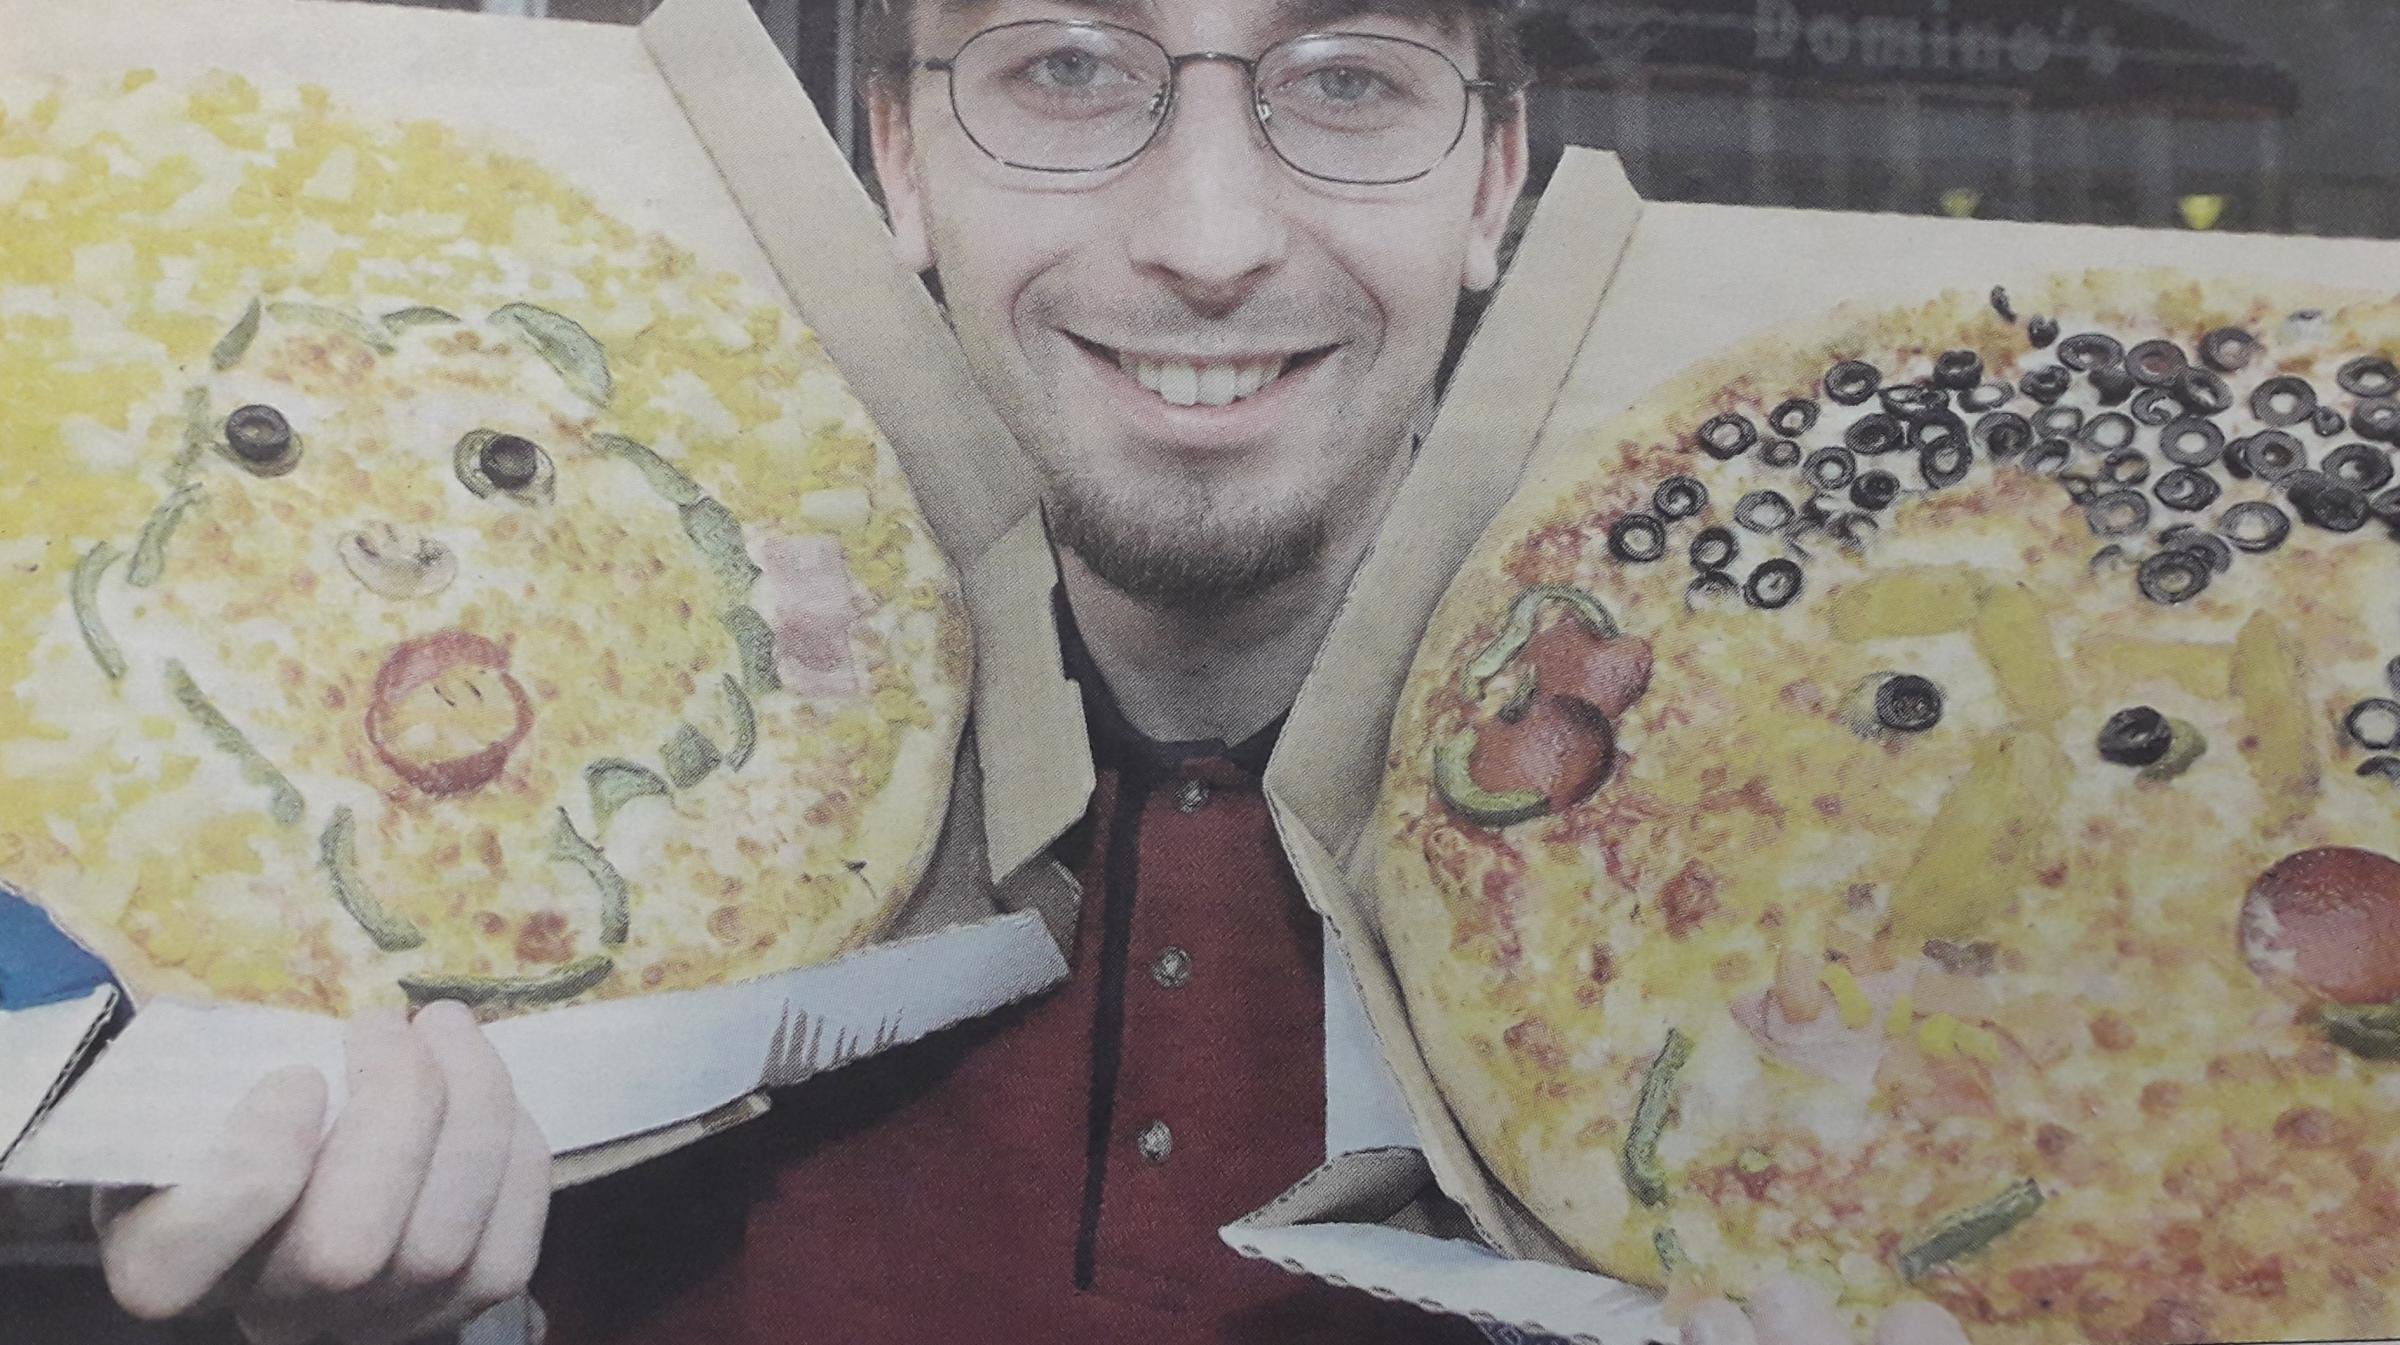 Faces in pizza and other art forms